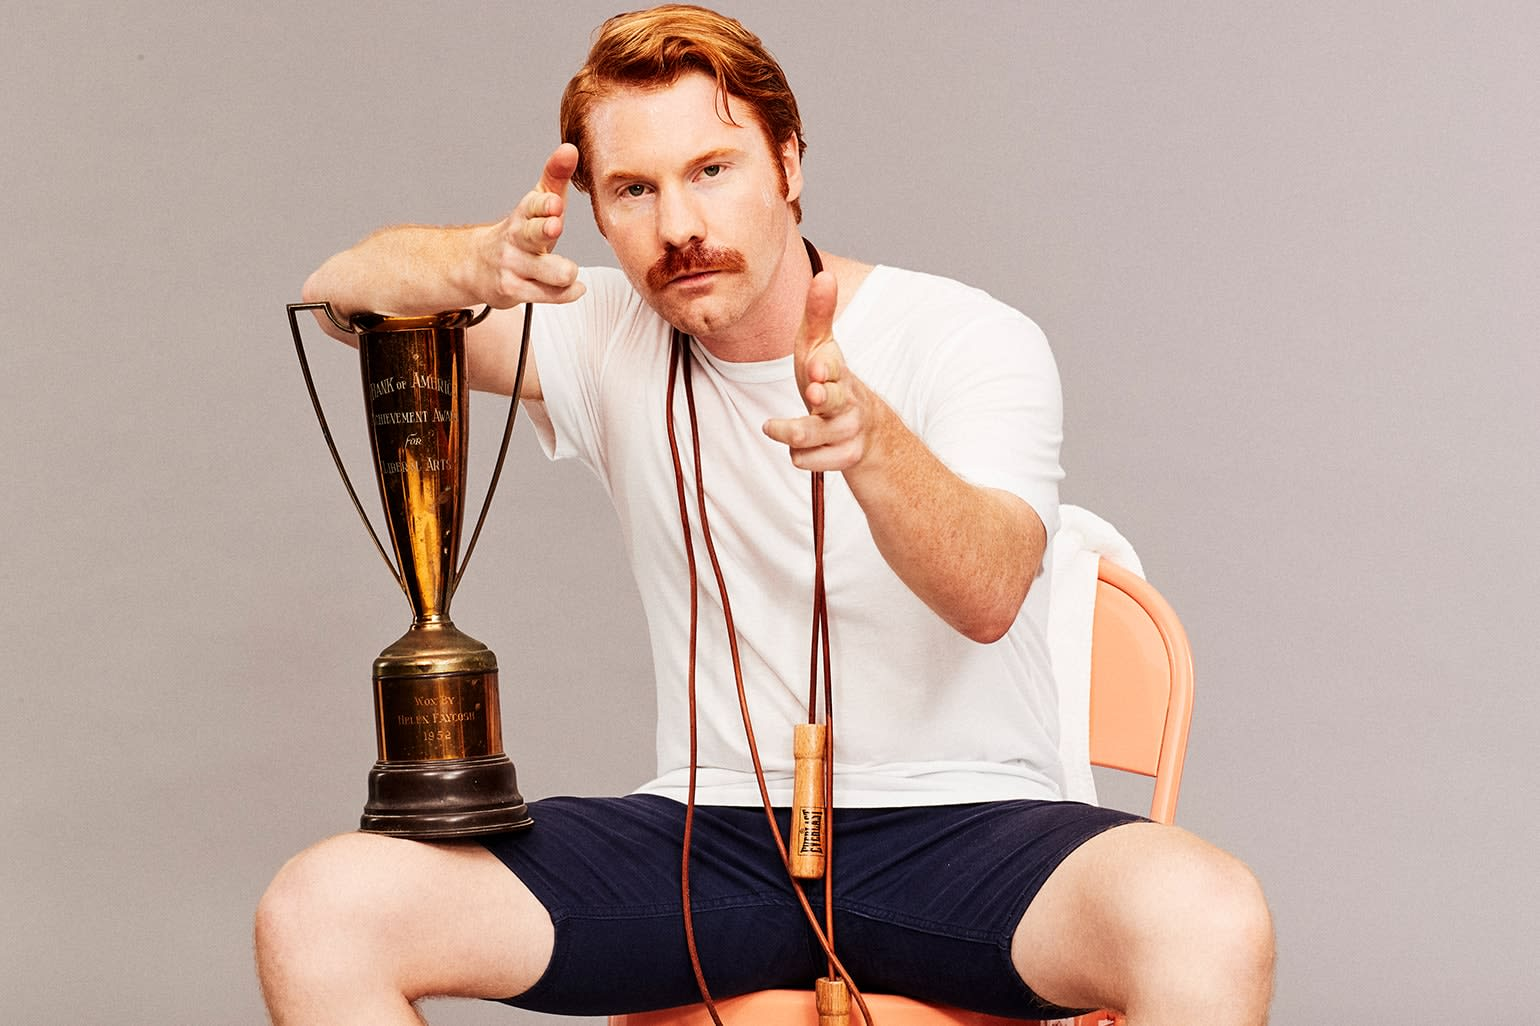 Mustached man in gym shorts - accompanied by a small trophy and exercise rope - giving you finger guns